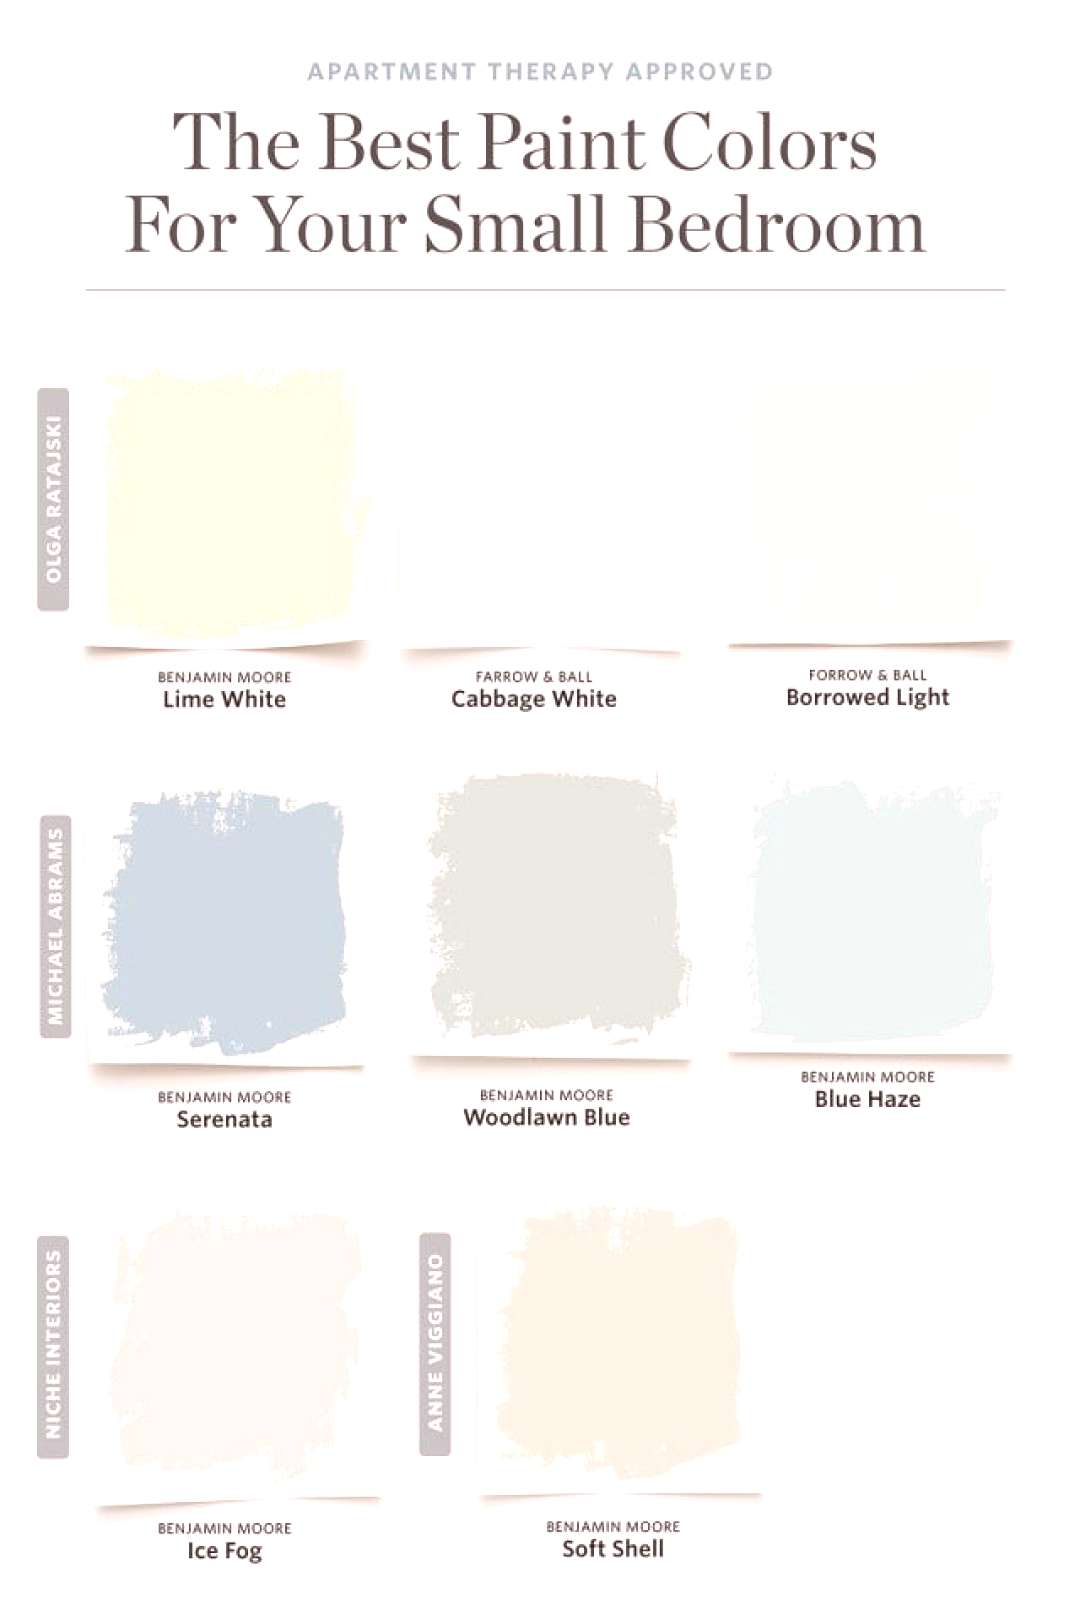 8 Paint Colors That Always Work for a Small Bedroom - Bedroom inspirations -